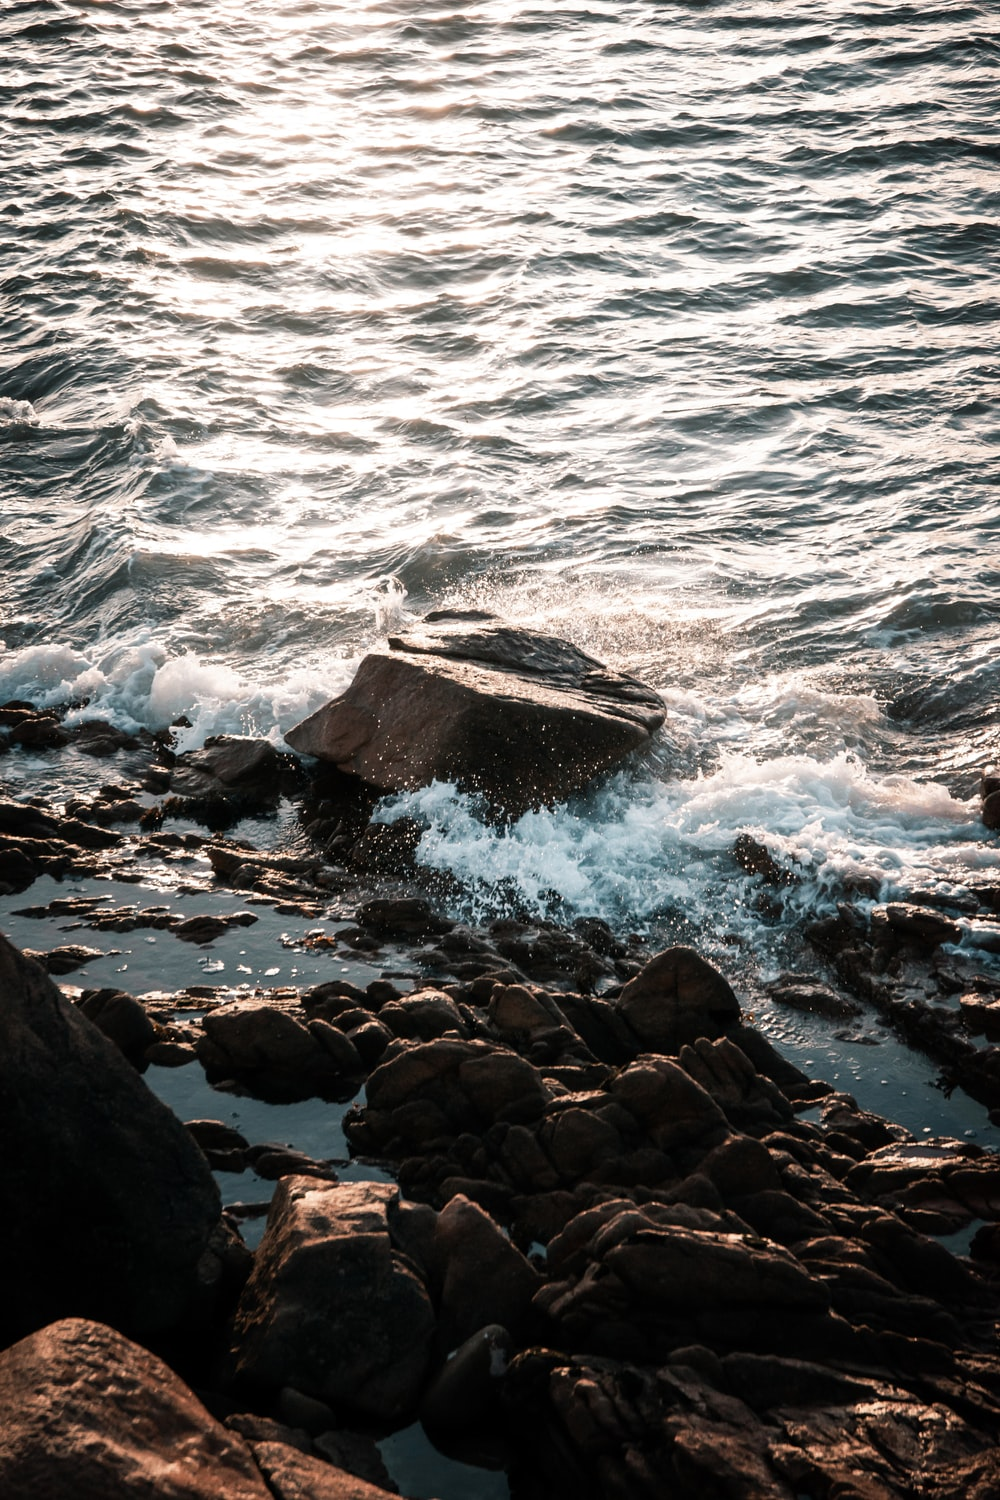 brown rocky shore with sea waves crashing on rocks during daytime